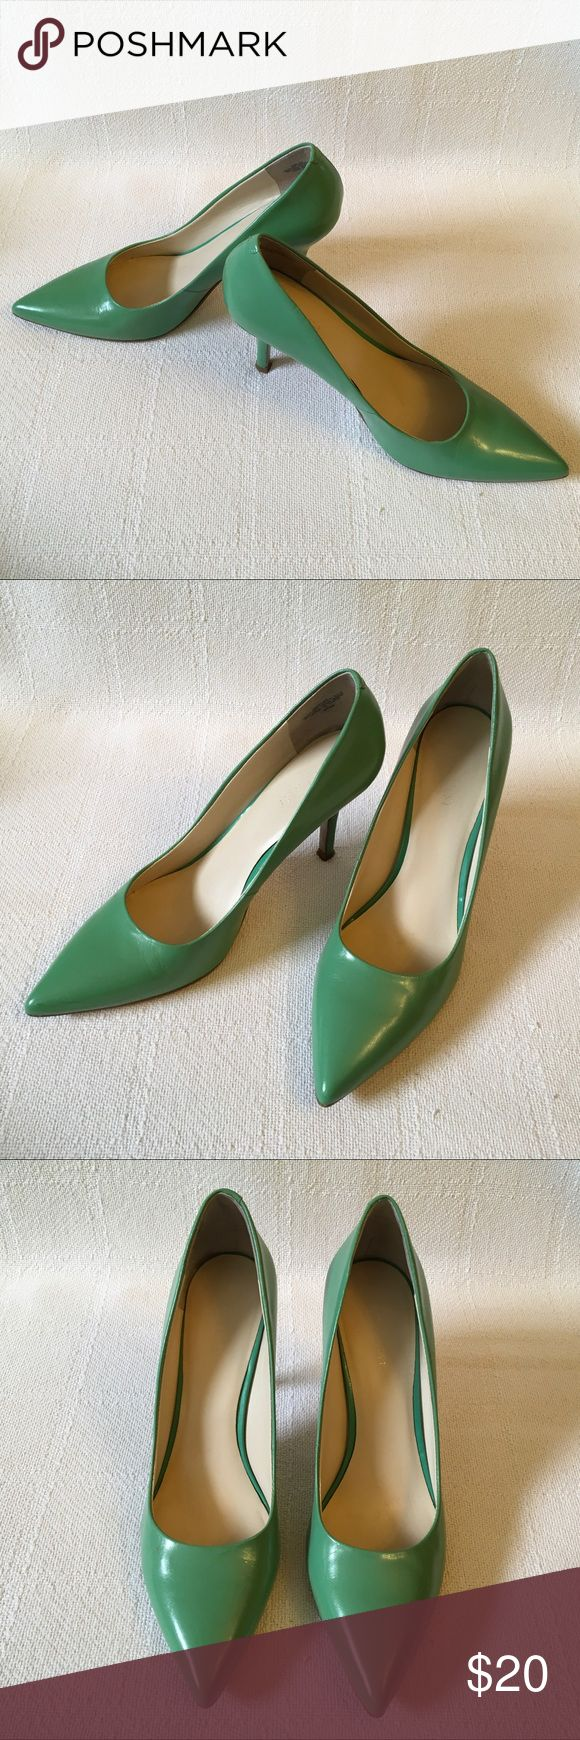 🆕Listing! Nine West heels Pretty green heels by Nine West. Preloved and in great condition. Minor scuff which can be seen in last pic. Nine West Shoes Heels